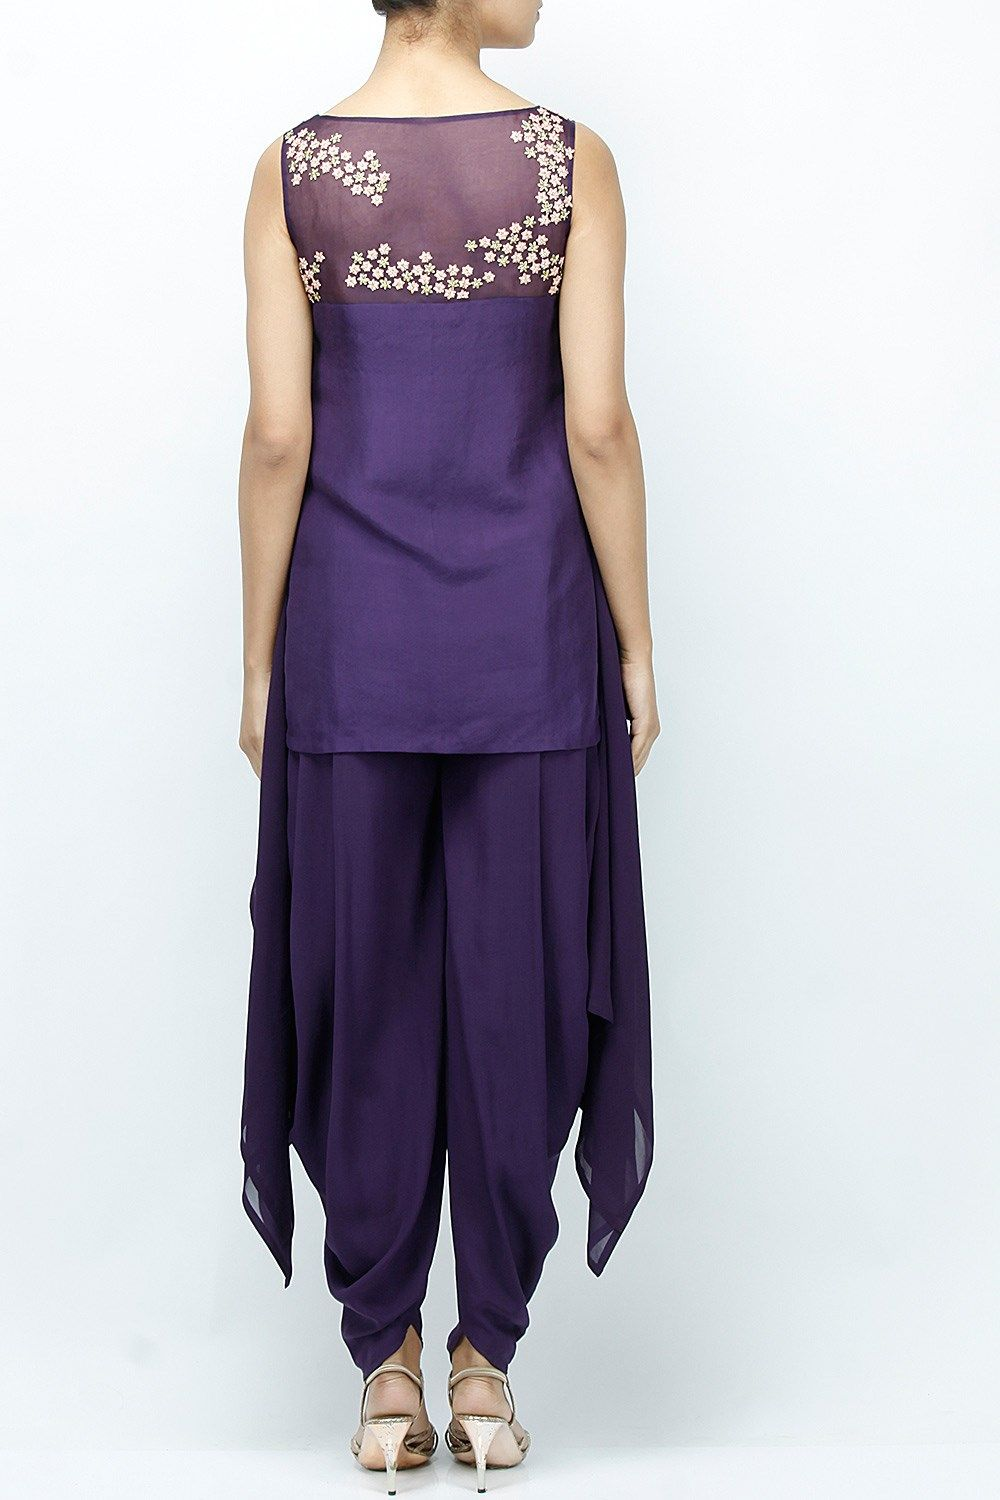 b802700c5ba Featuring a purple cut sleeved handkerchief hem kurta based in crepe with  embroidered yoke based in organza. It comes with a pair of dhoti pants in  crepe.